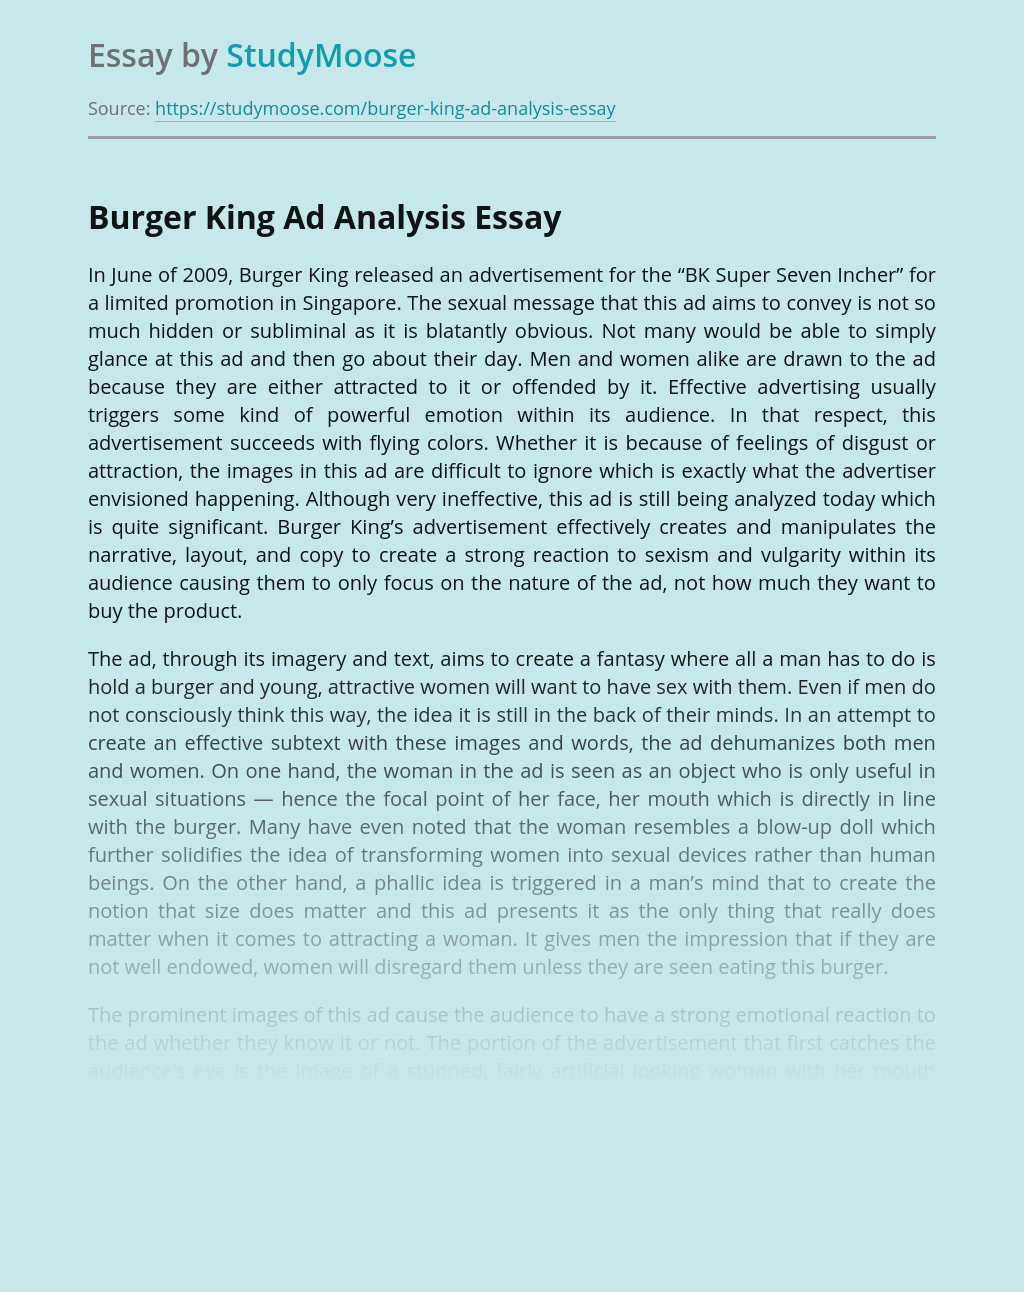 Burger King Ad Analysis